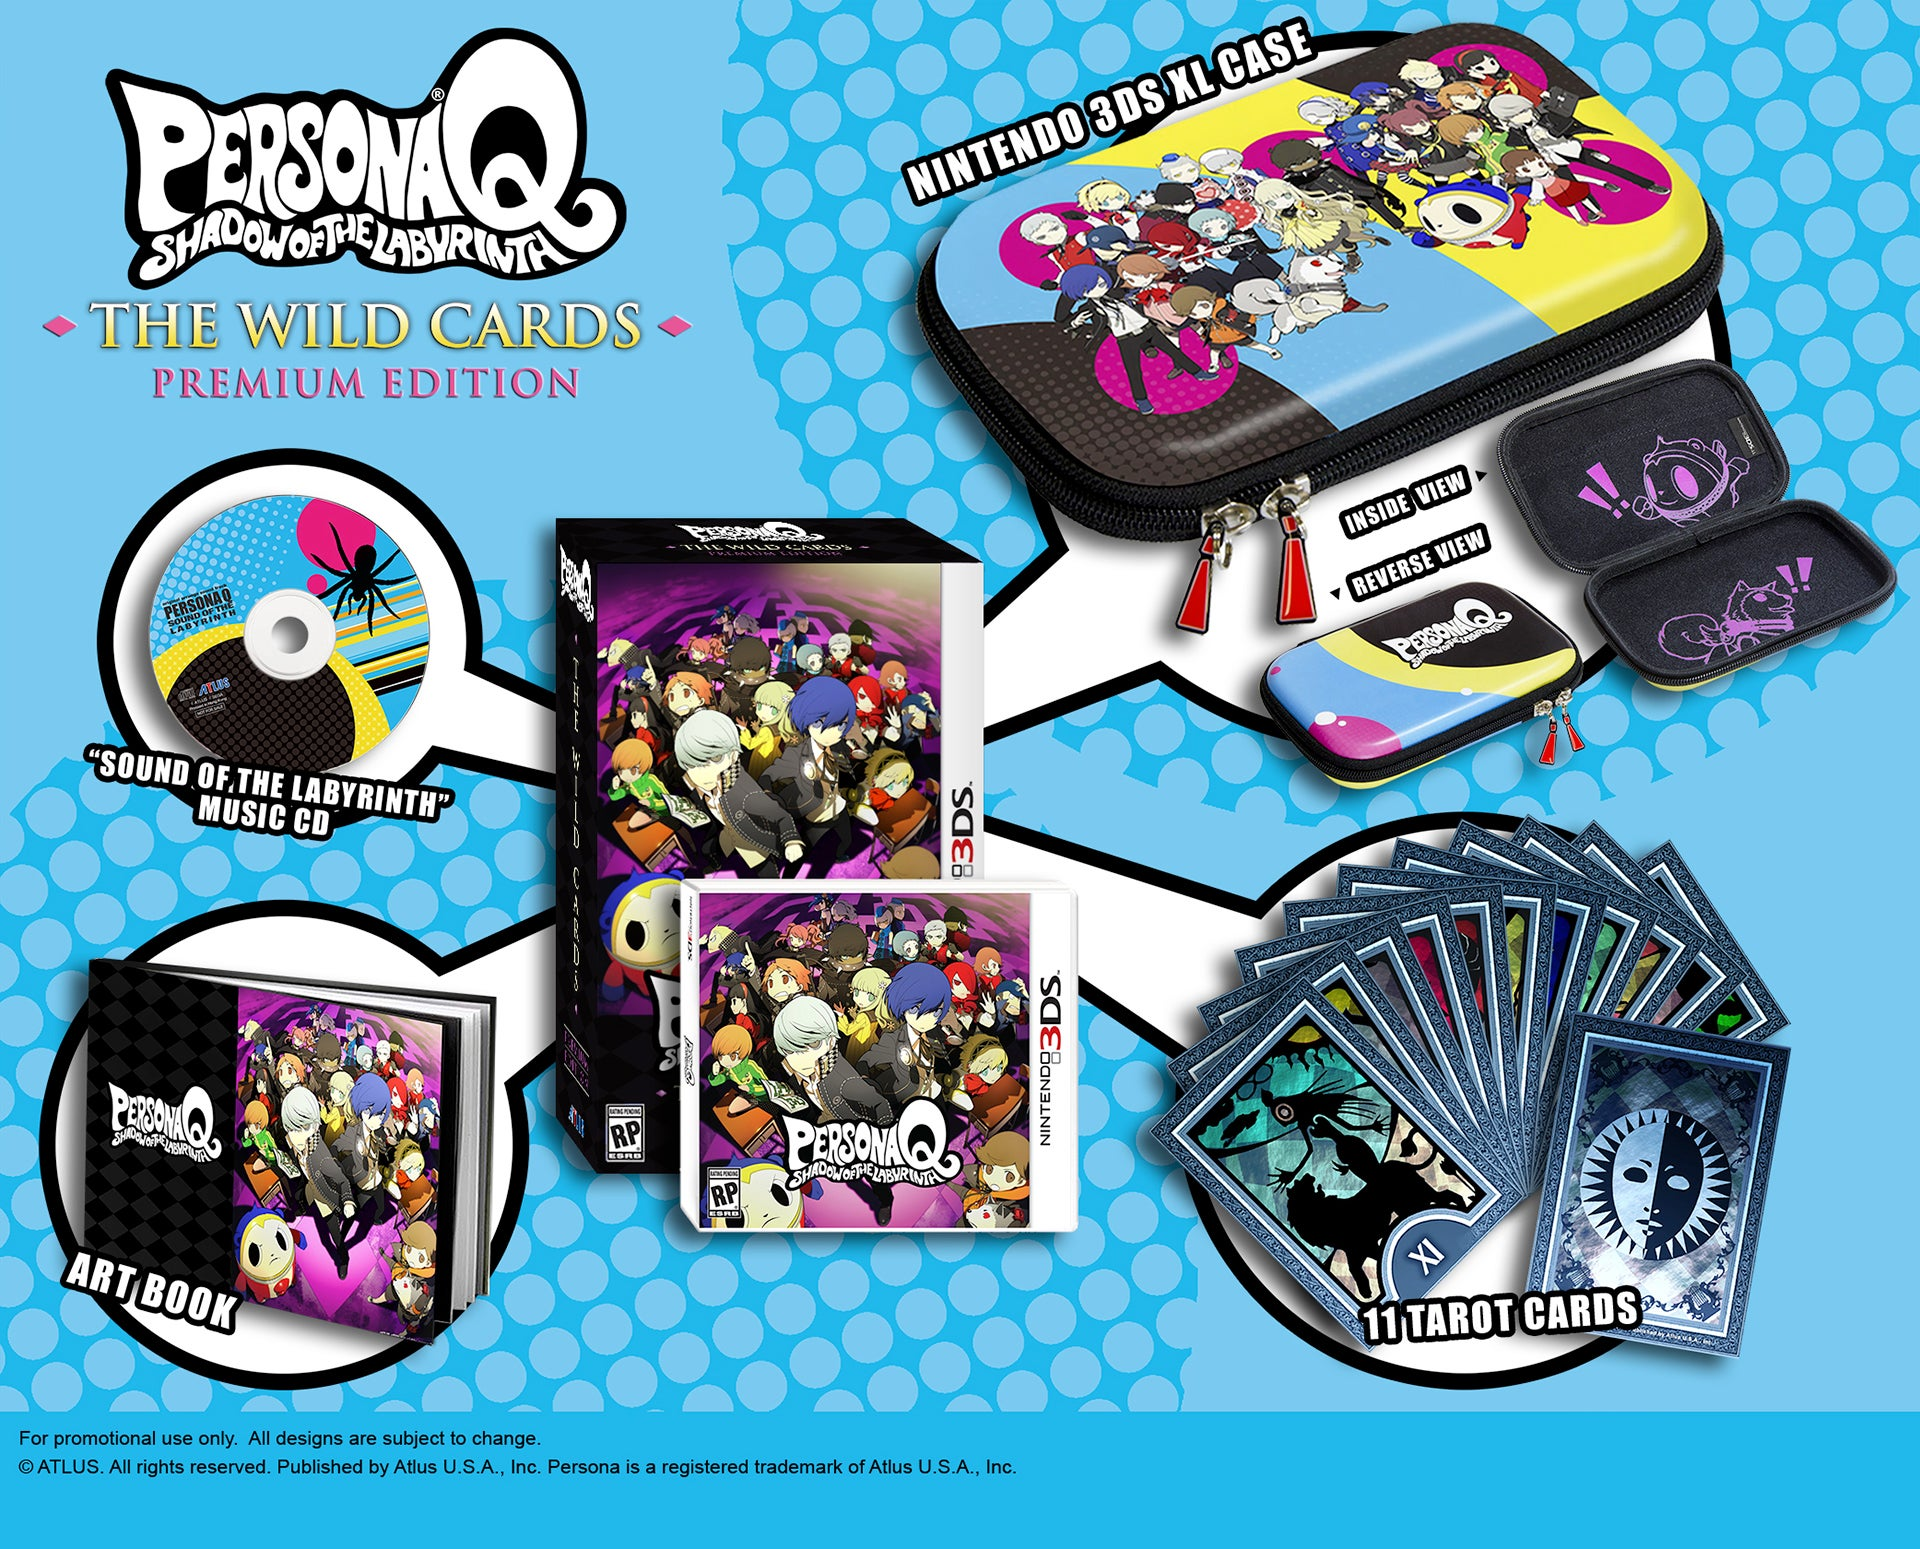 Every First-Run Copy Of Persona Q Comes With Half A Set Of Cards